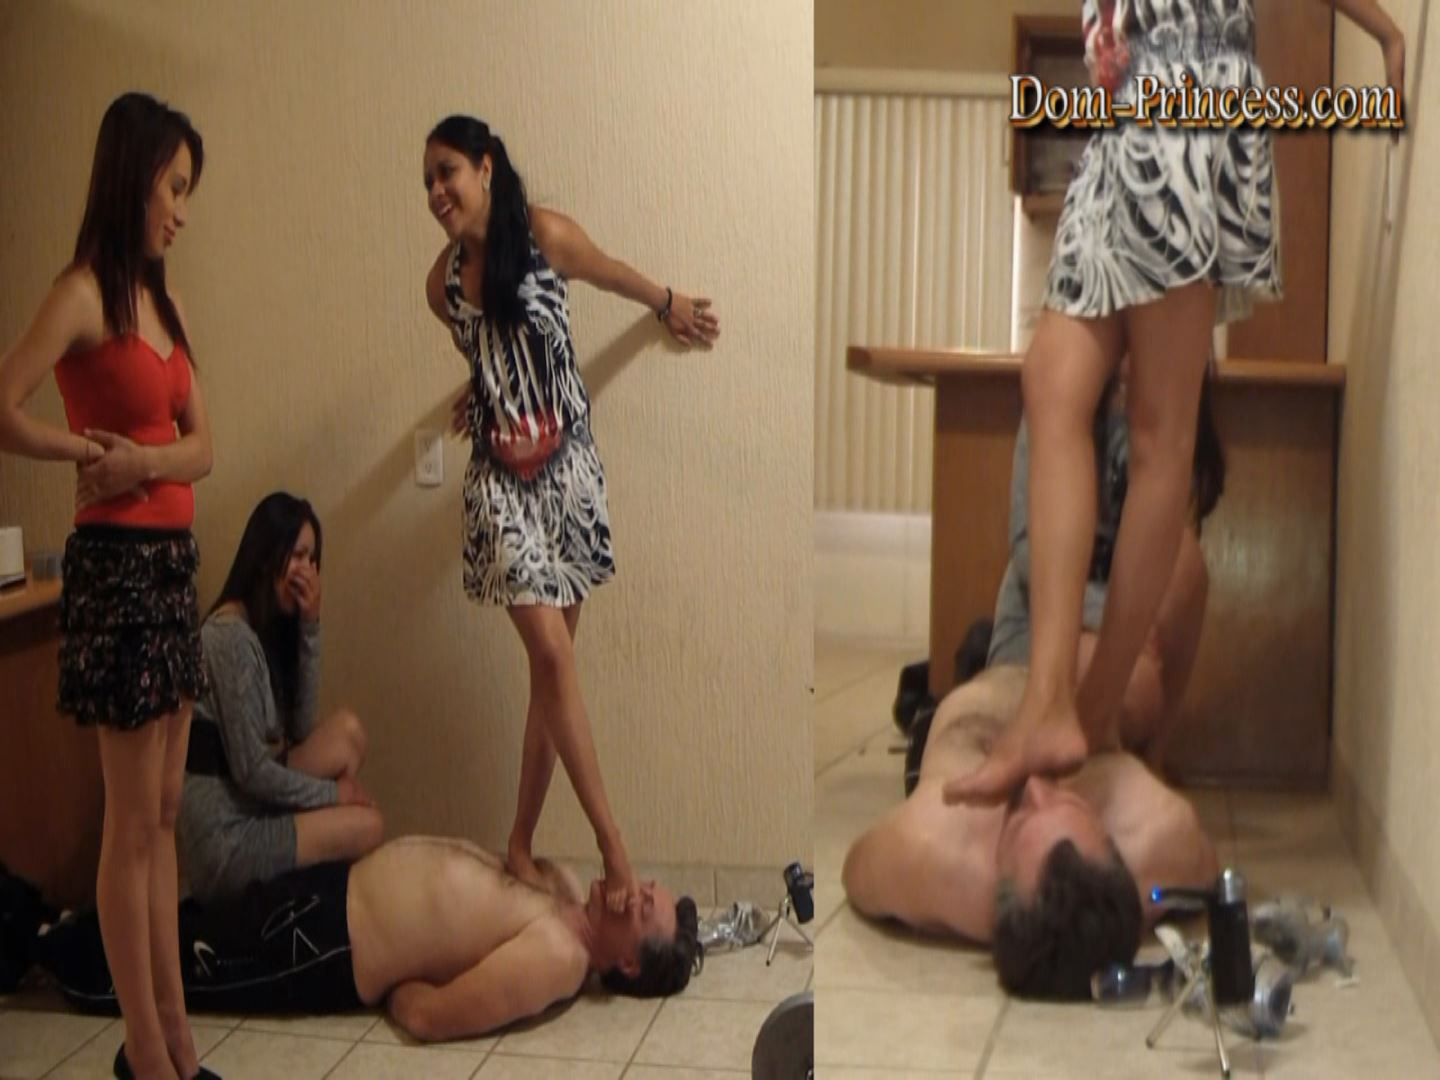 [SCAT-PRINCESS] Girls Weight Lift Platform Part 1 [FULL HD][1080p][WMV]